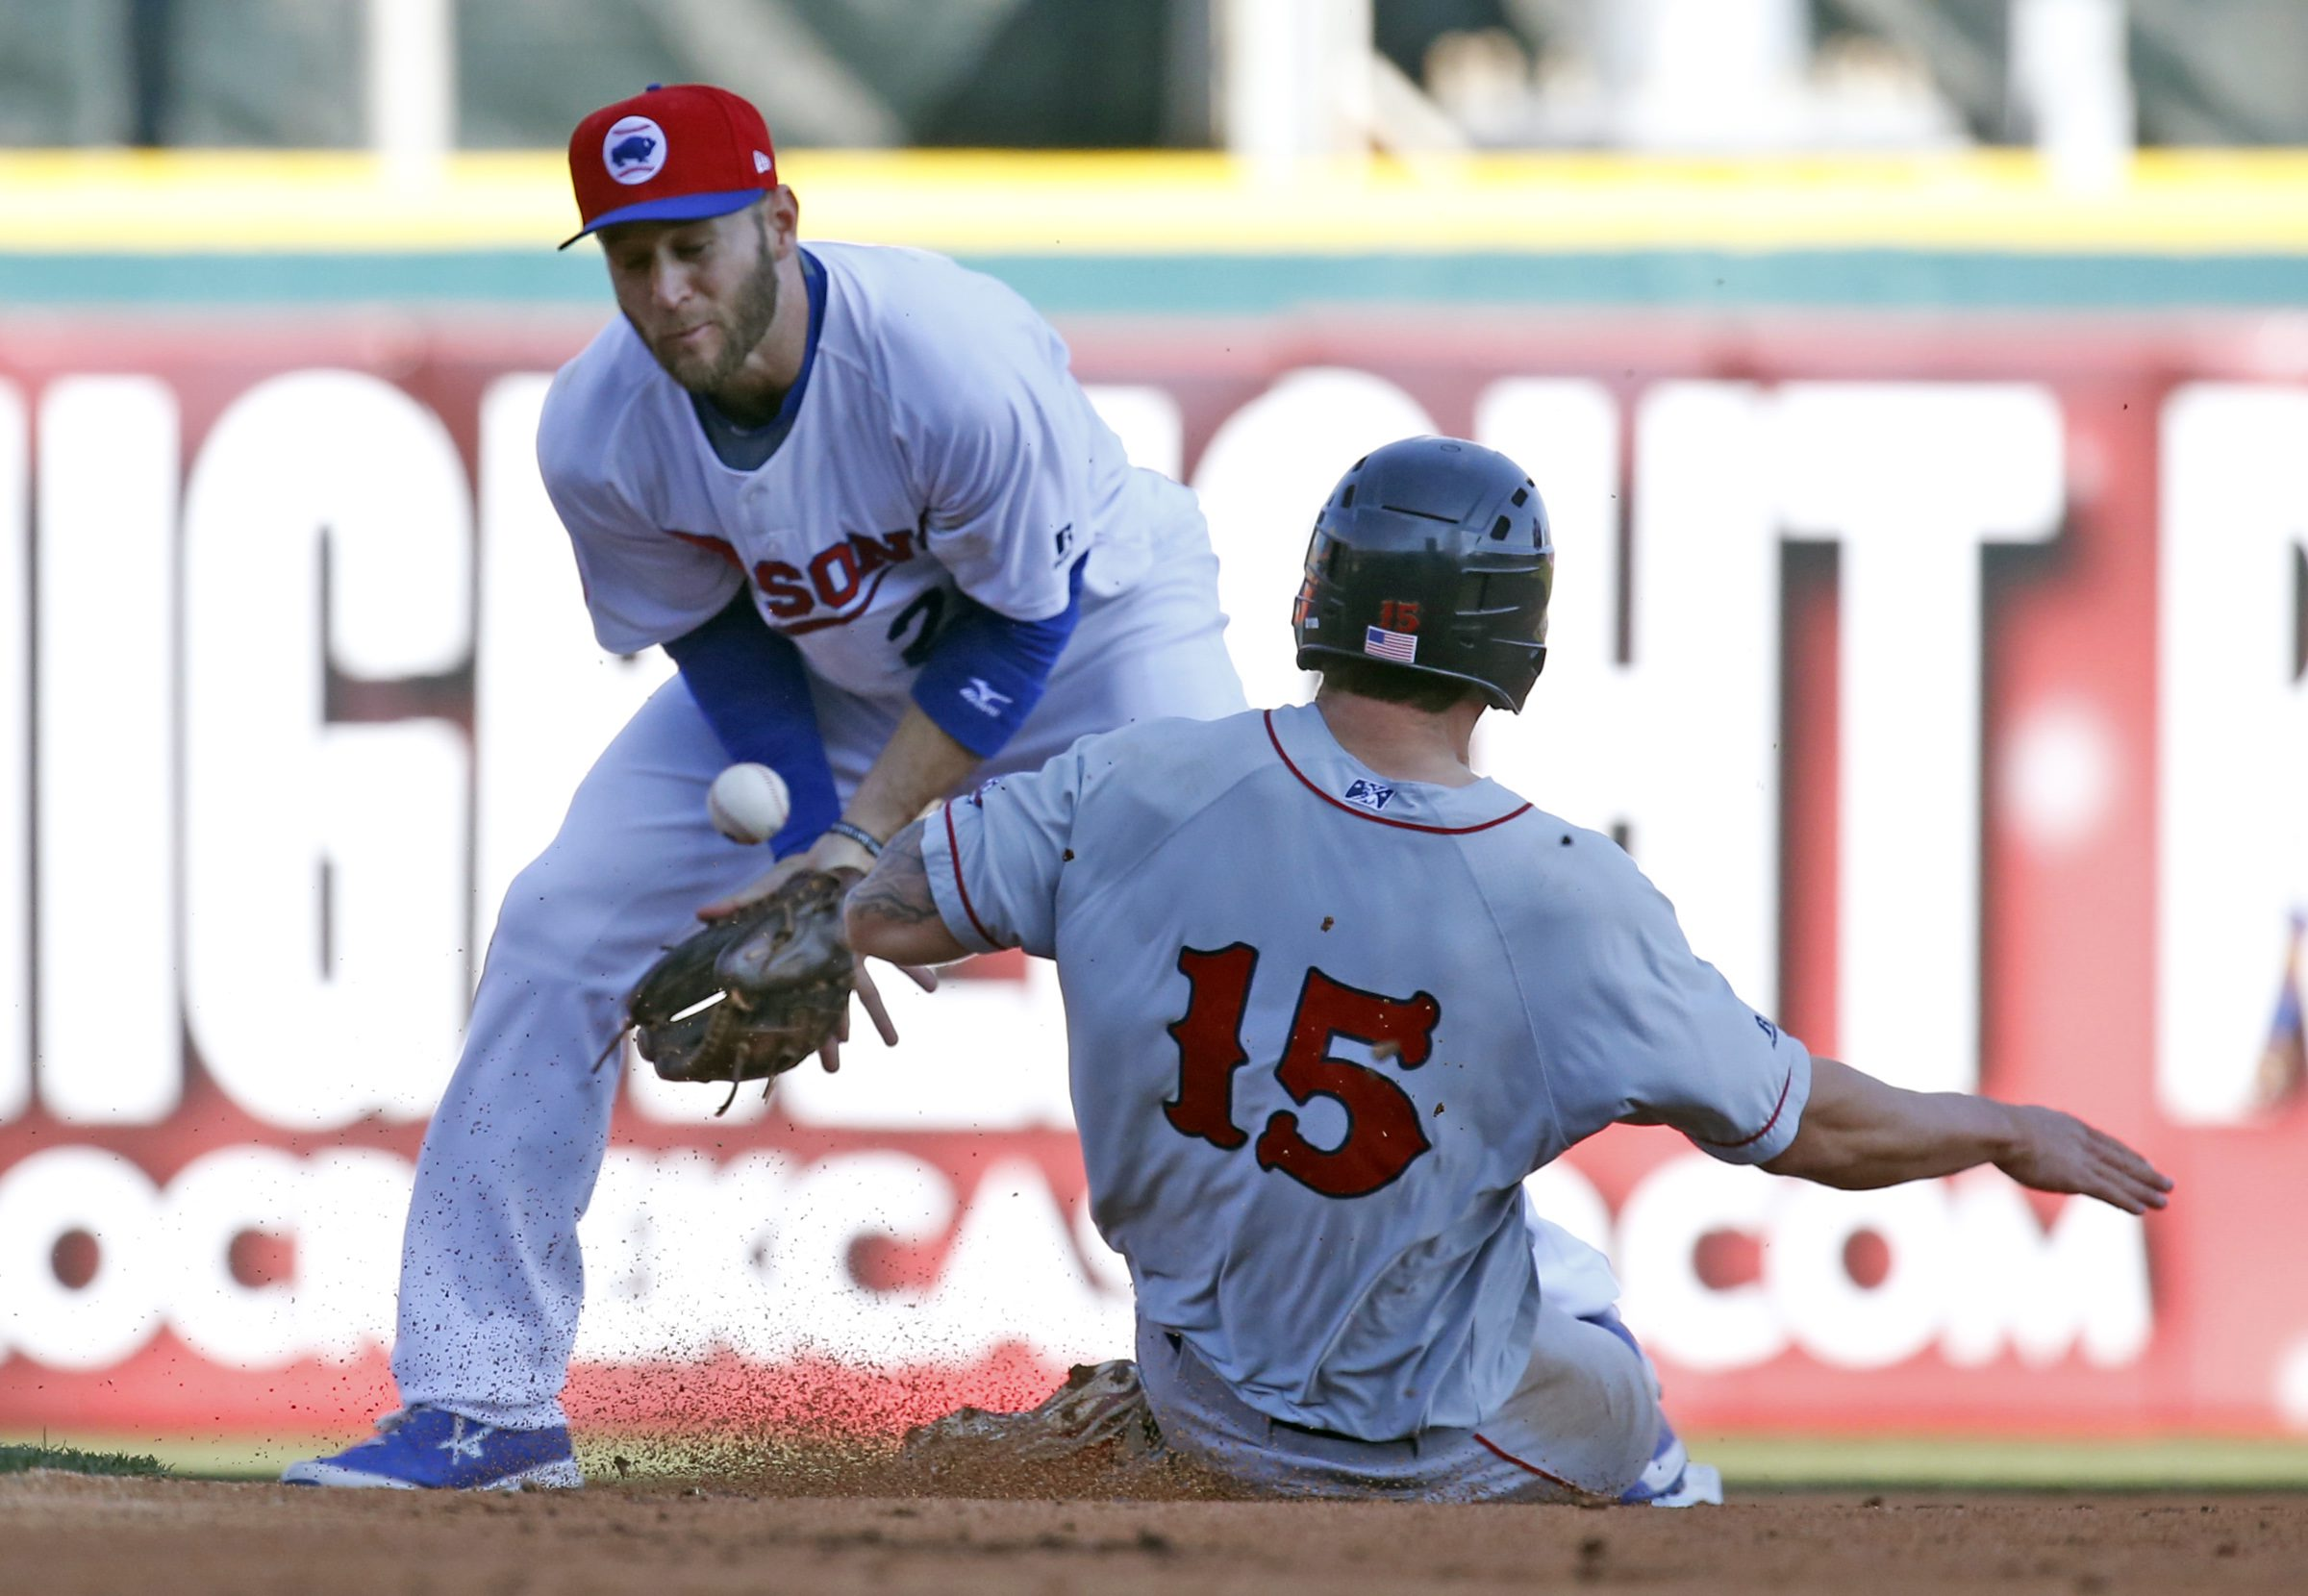 Buffalo Bisons David Adams cannot handle a ball on a steal attempt by Pawtucket Red Sox Sa Travis during 2nd inning action at Coca-Cola Field on Saturday, April 16, 2016. (Harry Scull Jr./Buffalo News)